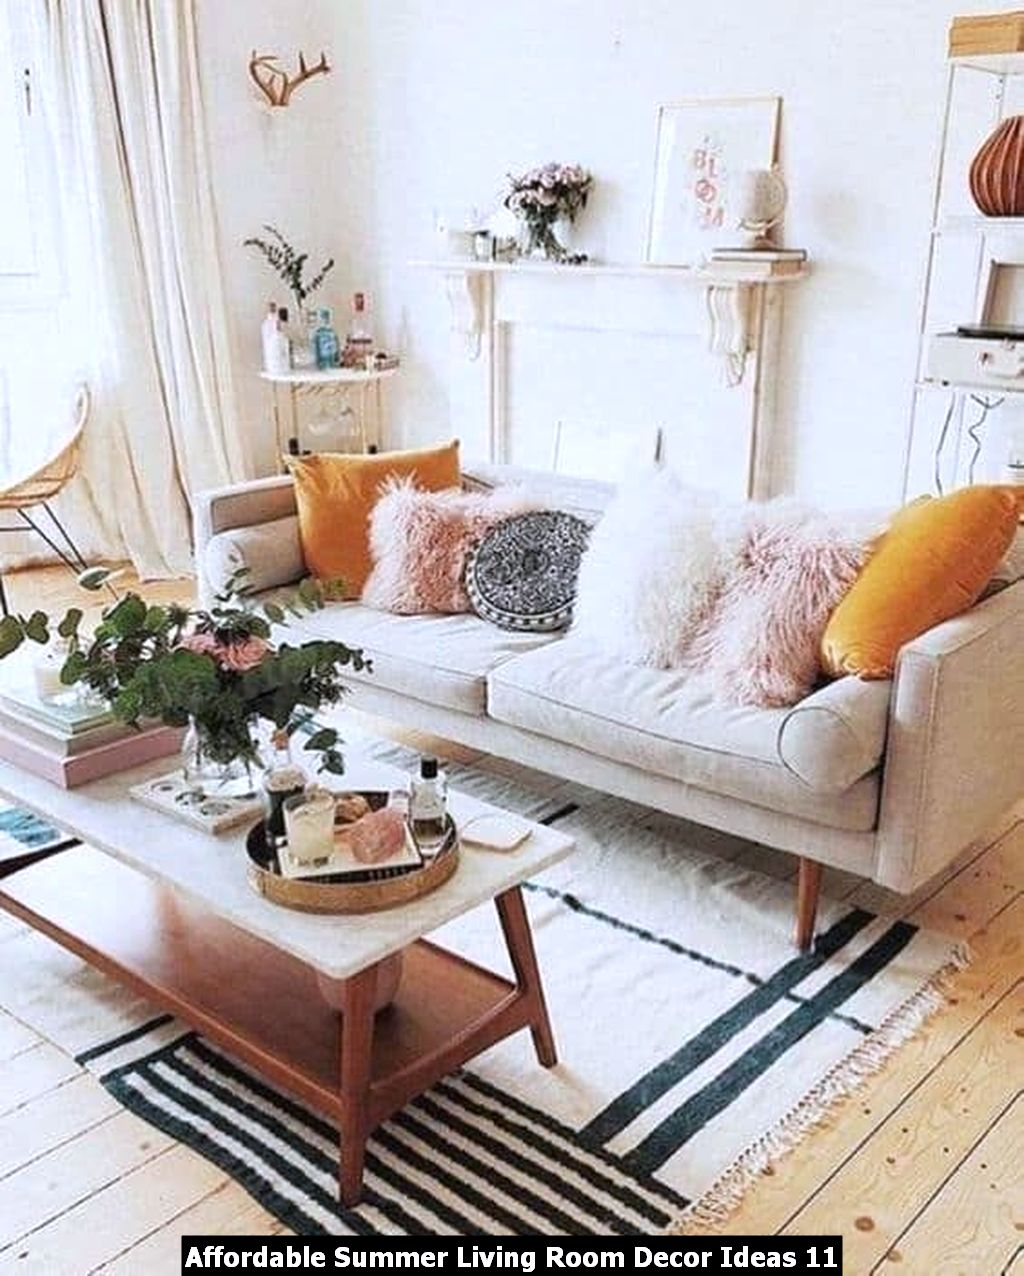 Affordable Summer Living Room Decor Ideas 11